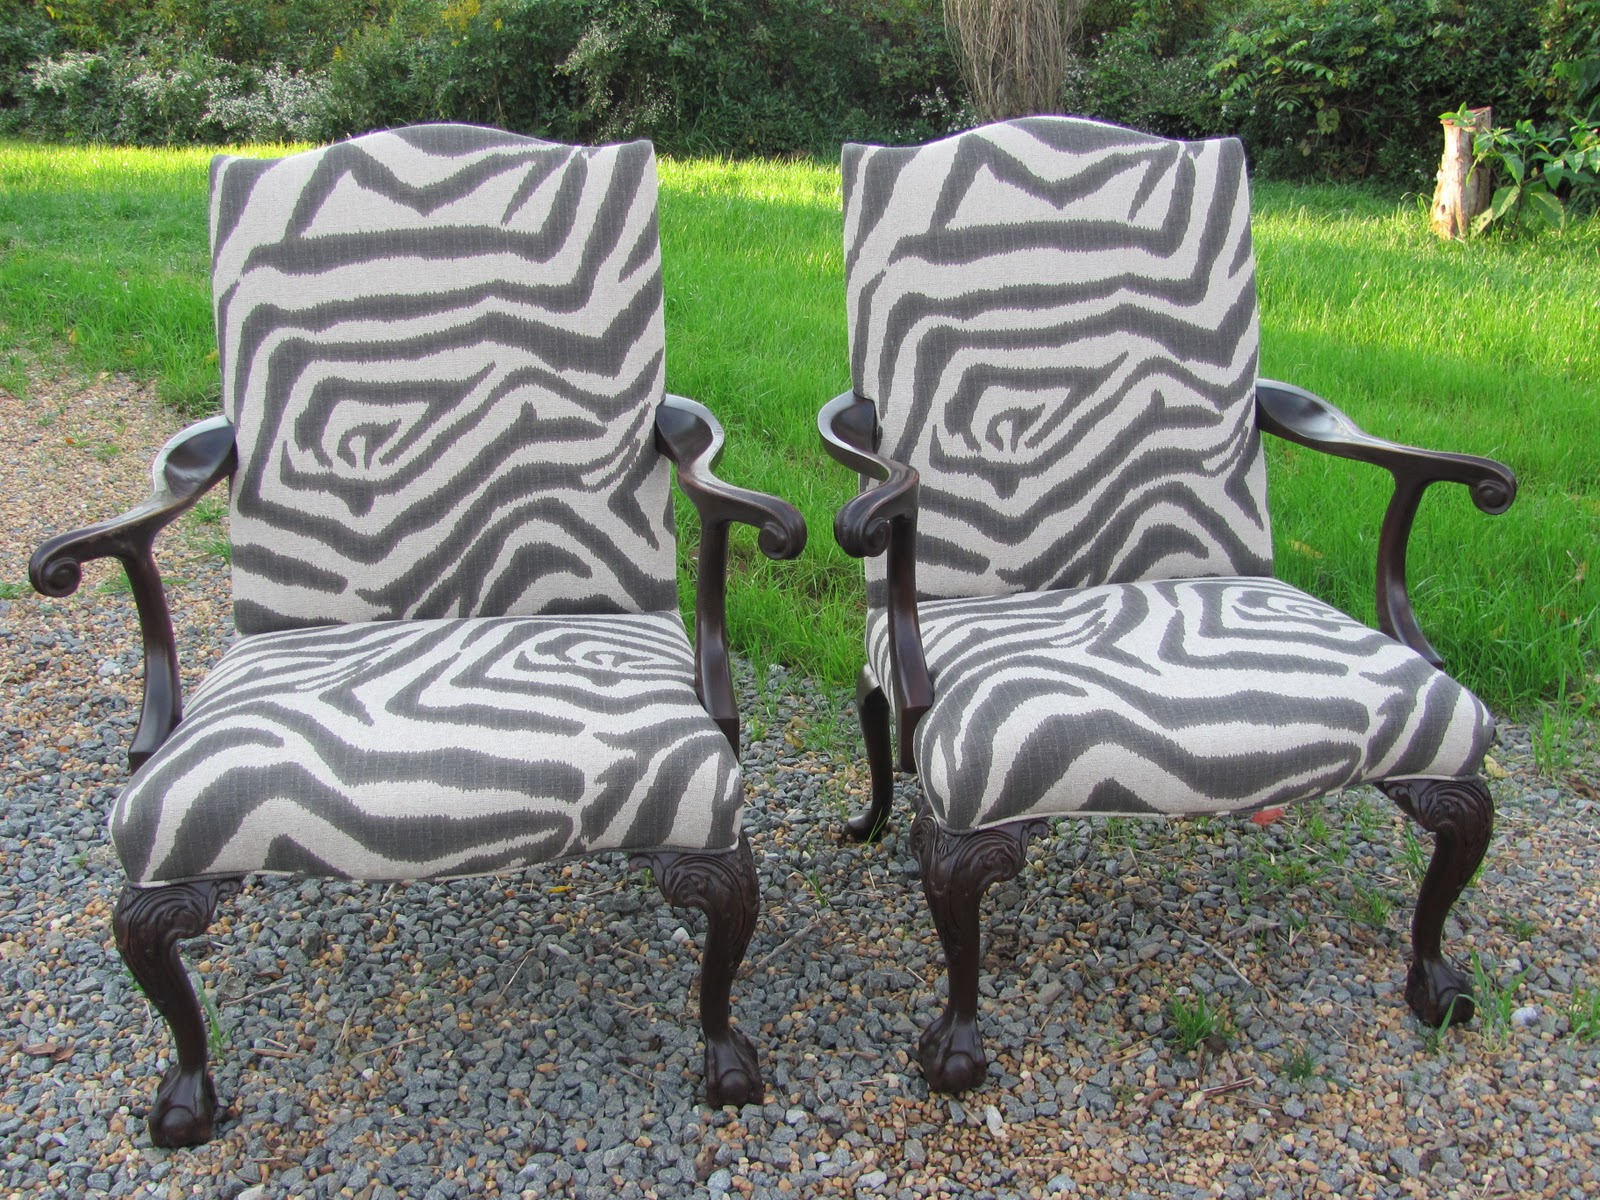 Animal Print Dining Chairs Theochic Decorating Blog French Parisian Animal Print Chairs